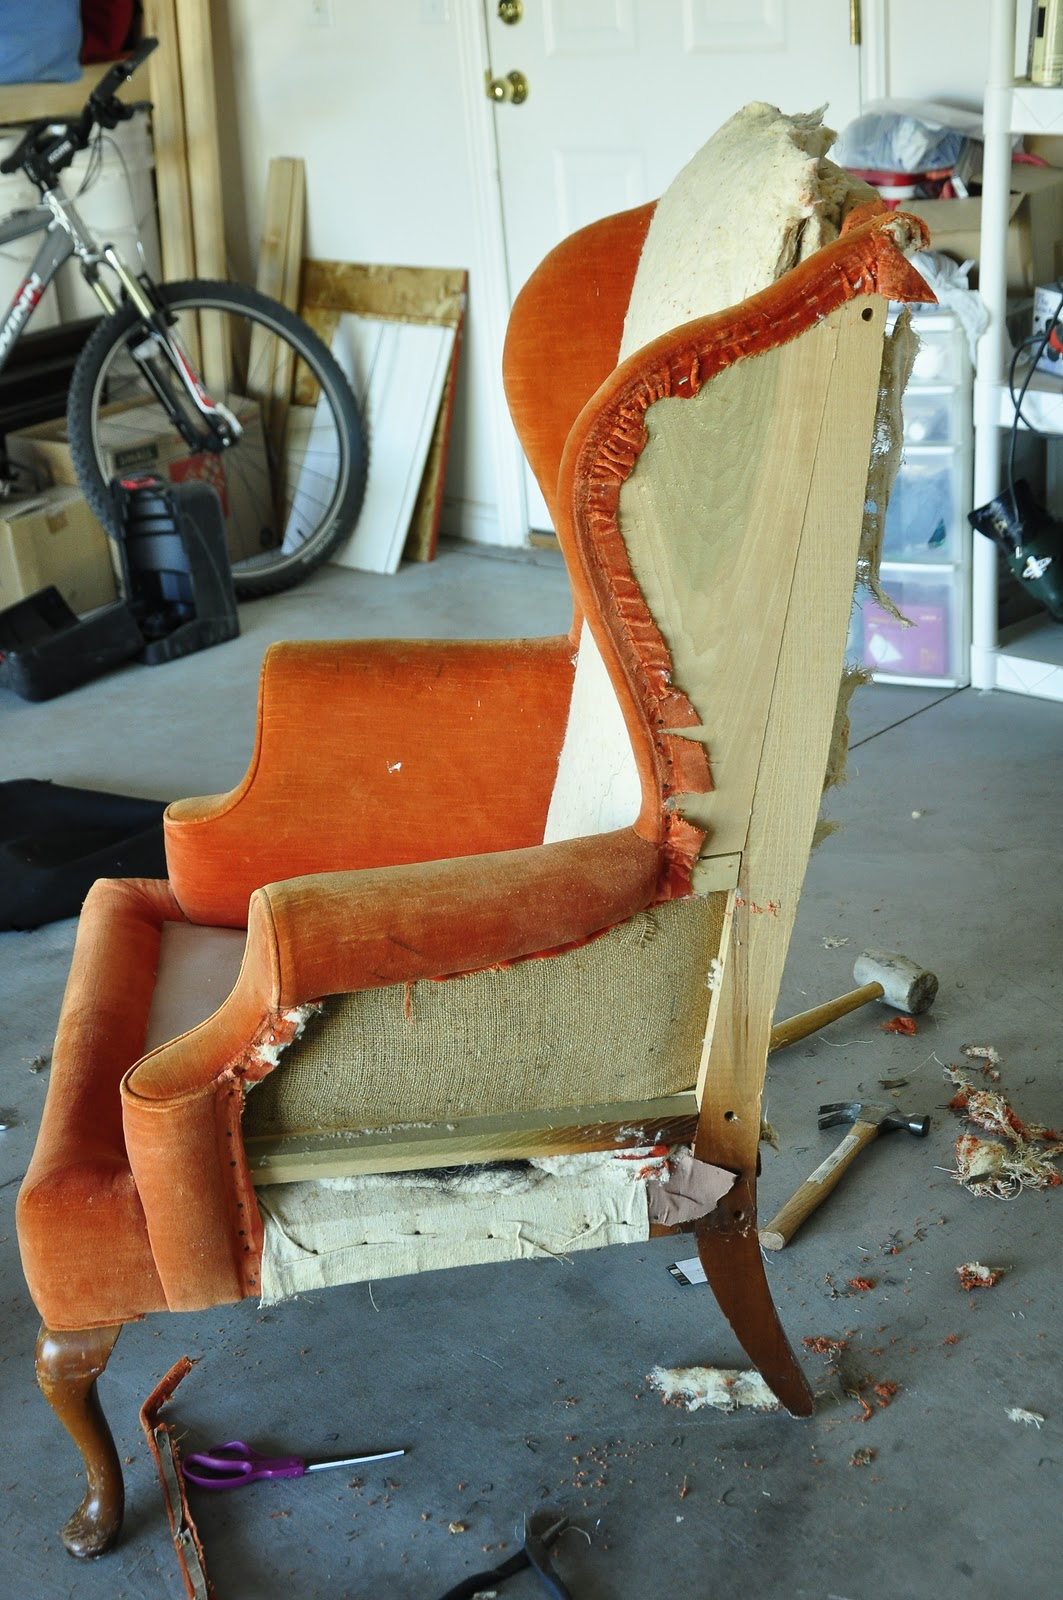 upholstering a chair leveraged freedom all things thriftys top 10 upholstery tips radica